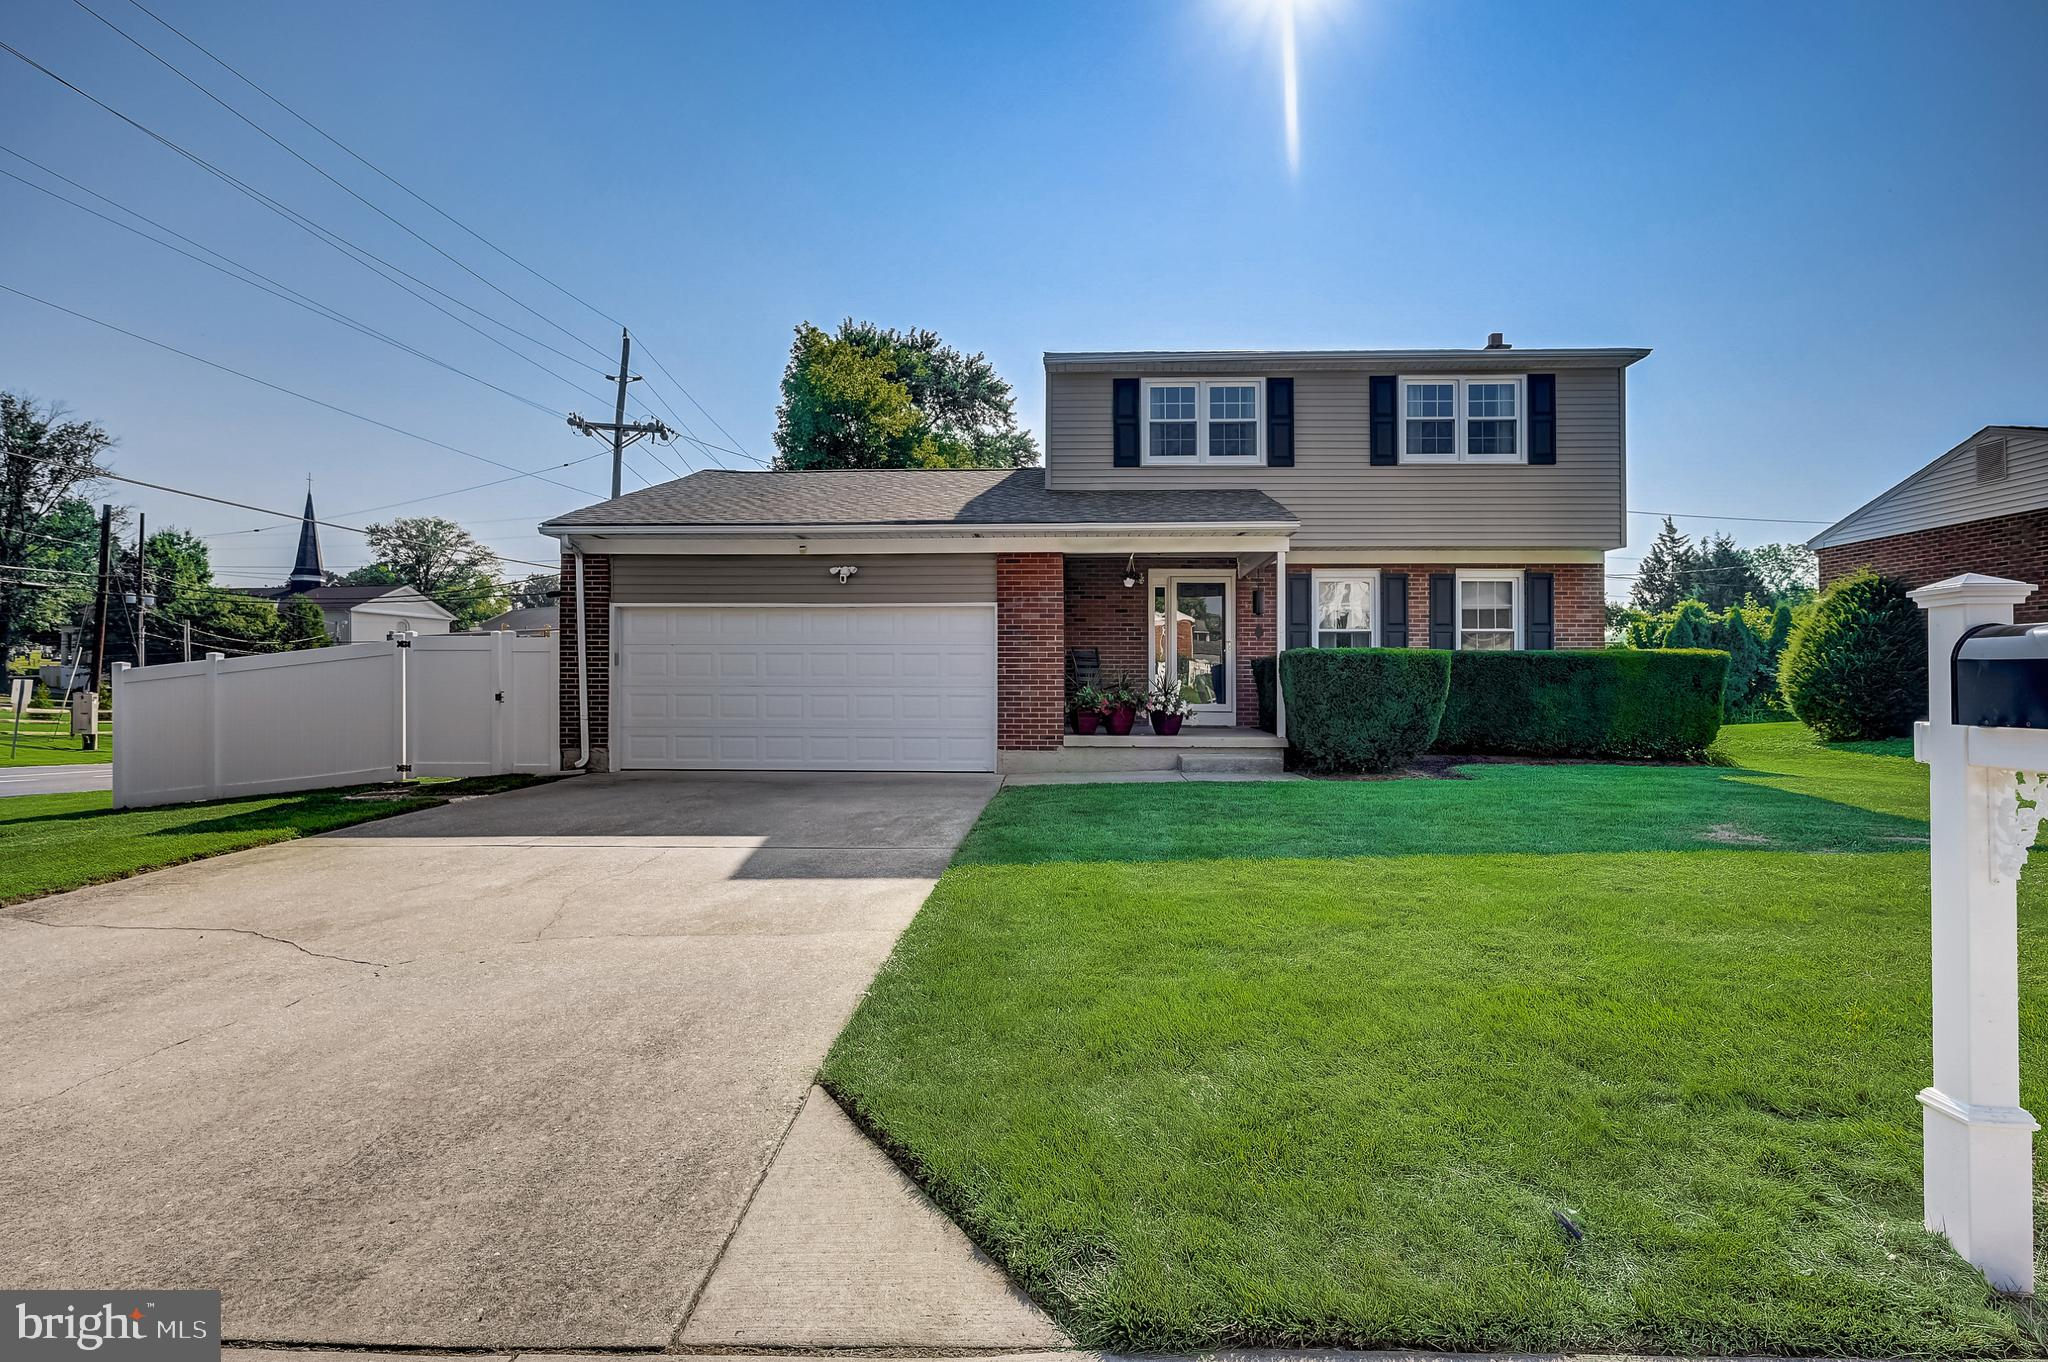 Welcome, Home! Check out this excellently-maintained, move-in-ready 3 bedroom home with a peaceful b